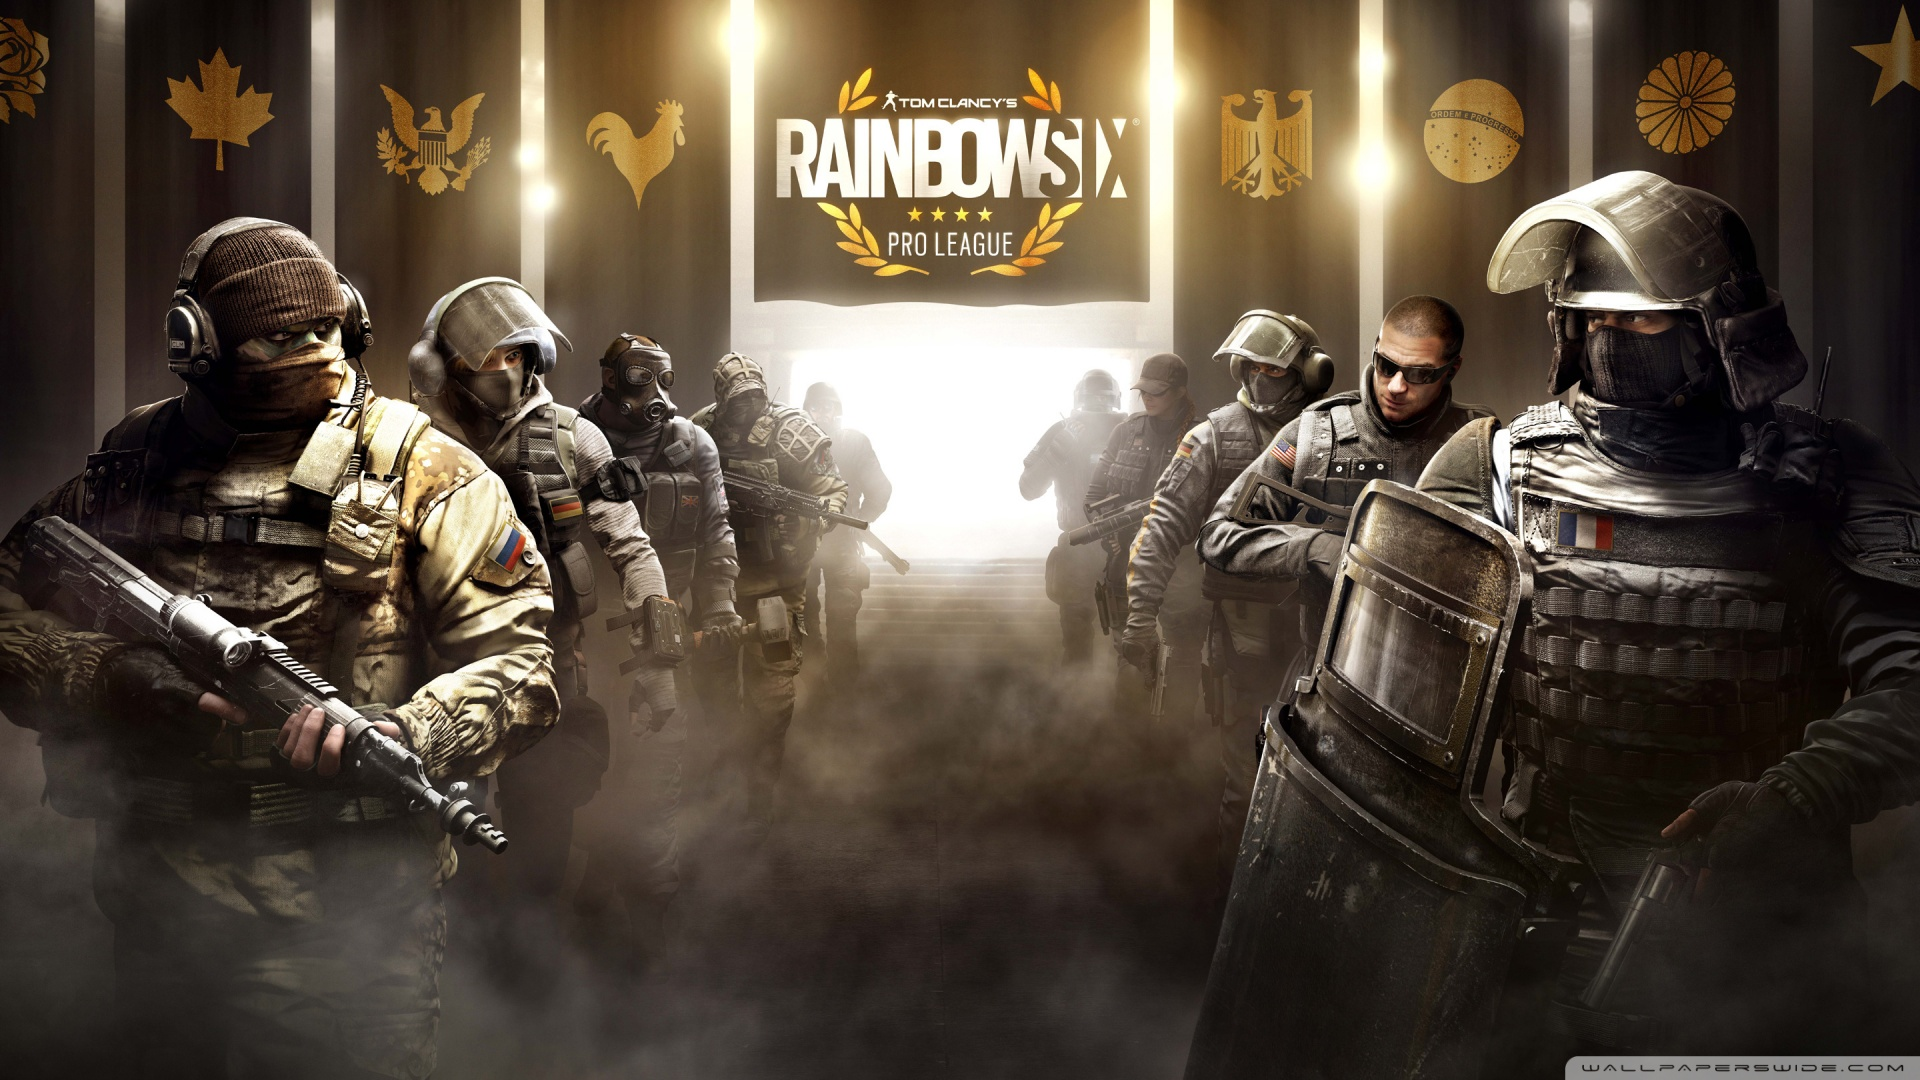 tom_clancys_rainbow_six_pro_league-wallpaper-1920x1080